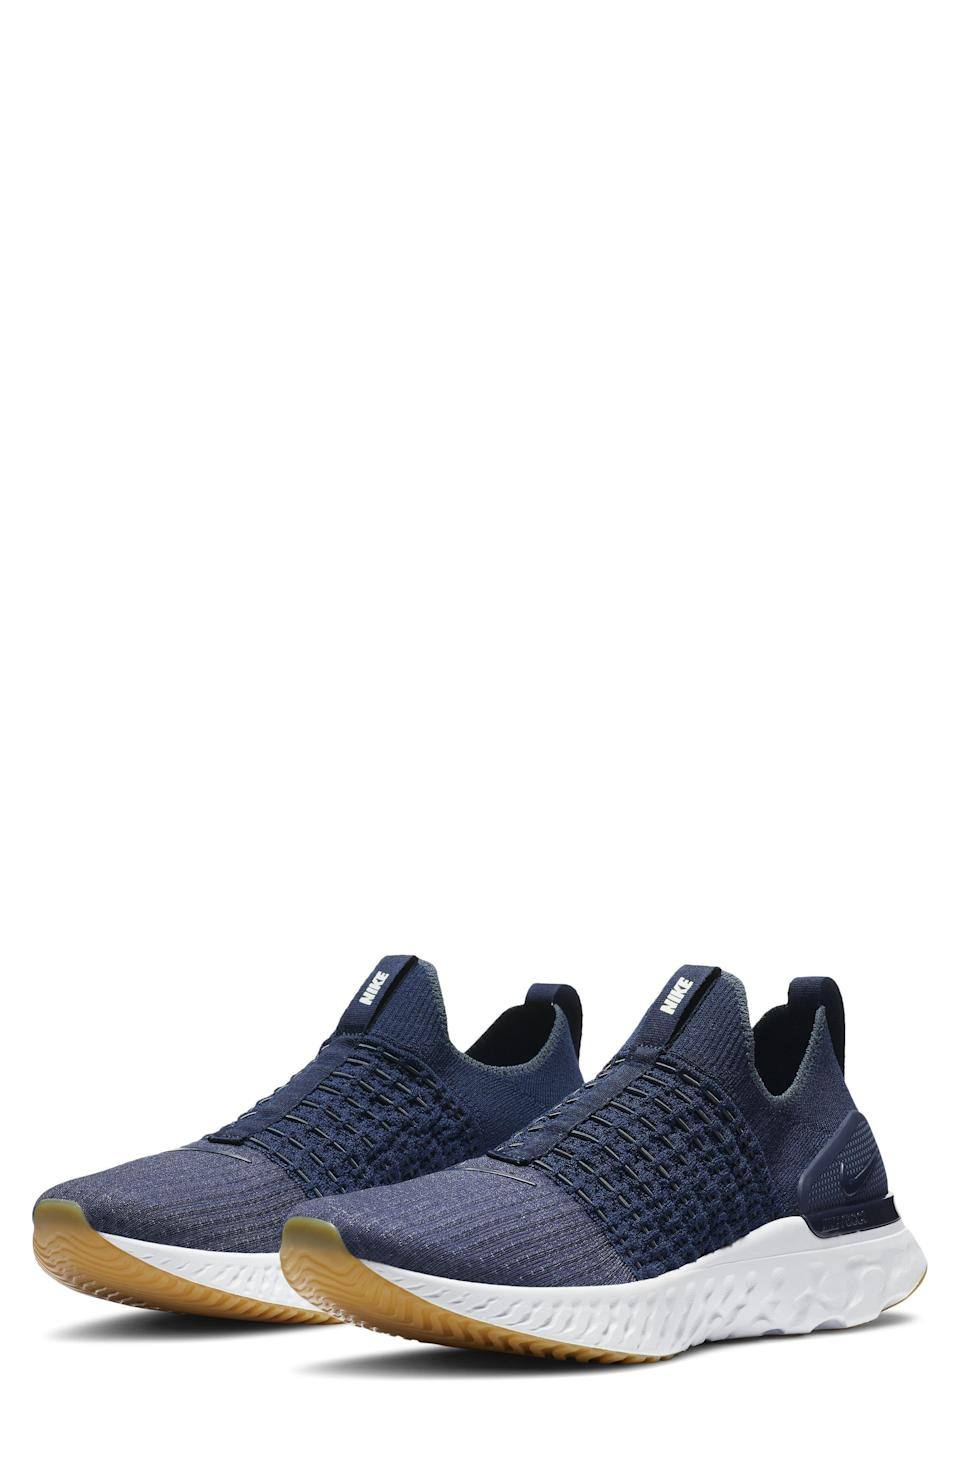 """<p><strong>NIKE</strong></p><p>nordstrom.com</p><p><a href=""""https://go.redirectingat.com?id=74968X1596630&url=https%3A%2F%2Fwww.nordstrom.com%2Fs%2Fnike-react-phantom-run-flyknit-2-running-shoe-men%2F5464706&sref=https%3A%2F%2Fwww.bestproducts.com%2Ffitness%2Fg37158206%2Fnordstroms-anniversary-sale-best-sneakers%2F"""" rel=""""nofollow noopener"""" target=""""_blank"""" data-ylk=""""slk:BUY IT HERE"""" class=""""link rapid-noclick-resp"""">BUY IT HERE</a></p><p><del>$140</del><br><strong>$99.90</strong><strong><br></strong></p><p>The brand mixed its signature FlyKnit uppers with a Nike React foam sole, which absorbs impact and distributes weight. Plus, its lightweight construction makes this a perfect pair for sprints and HIIT classes alike.</p>"""